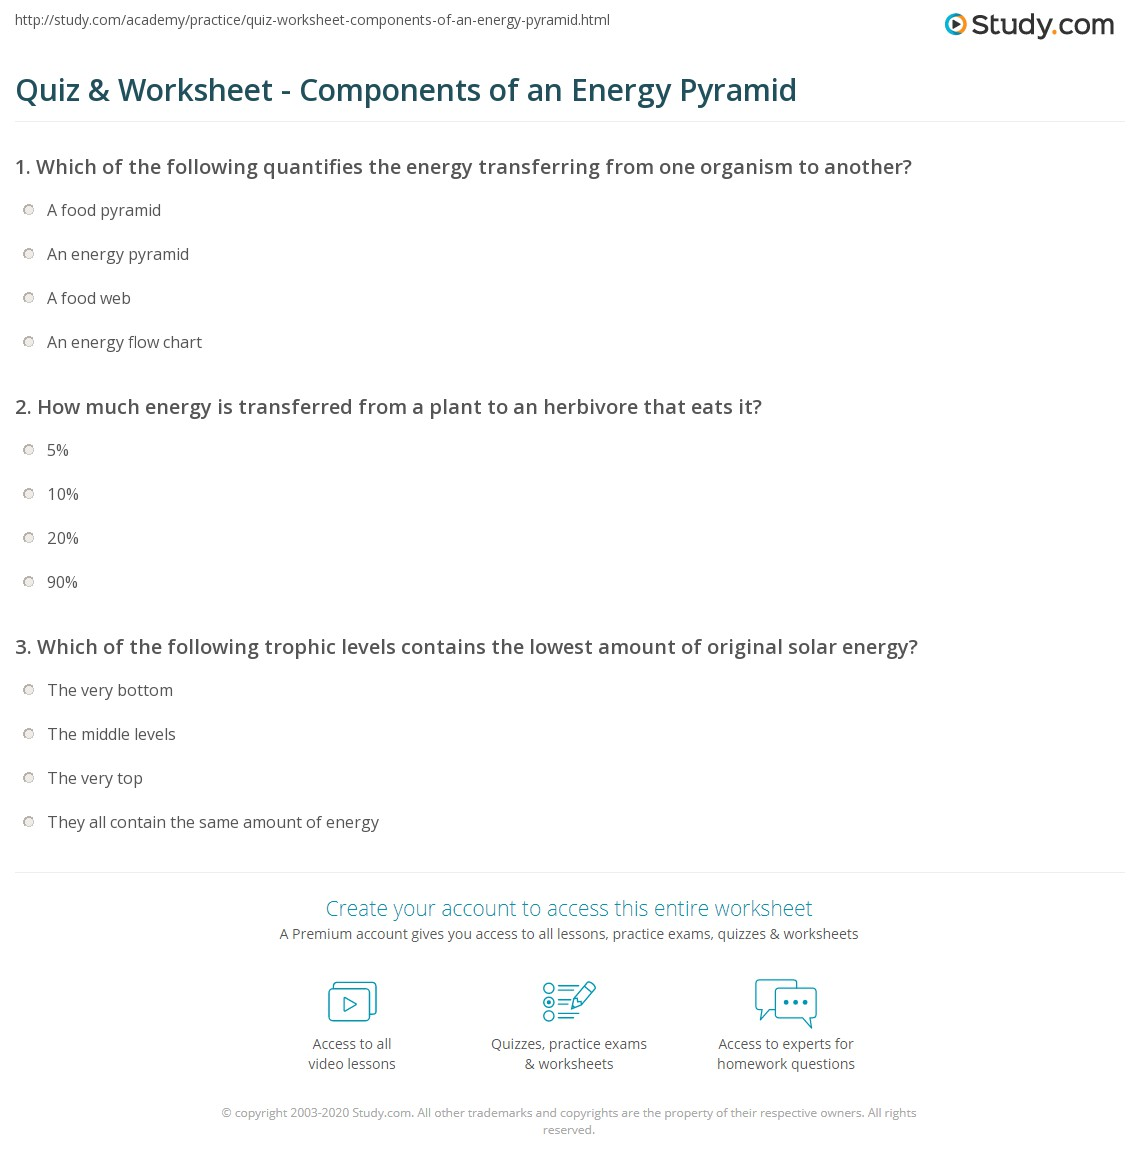 Energy Pyramid Worksheets Worksheets For School - Signaturebymm